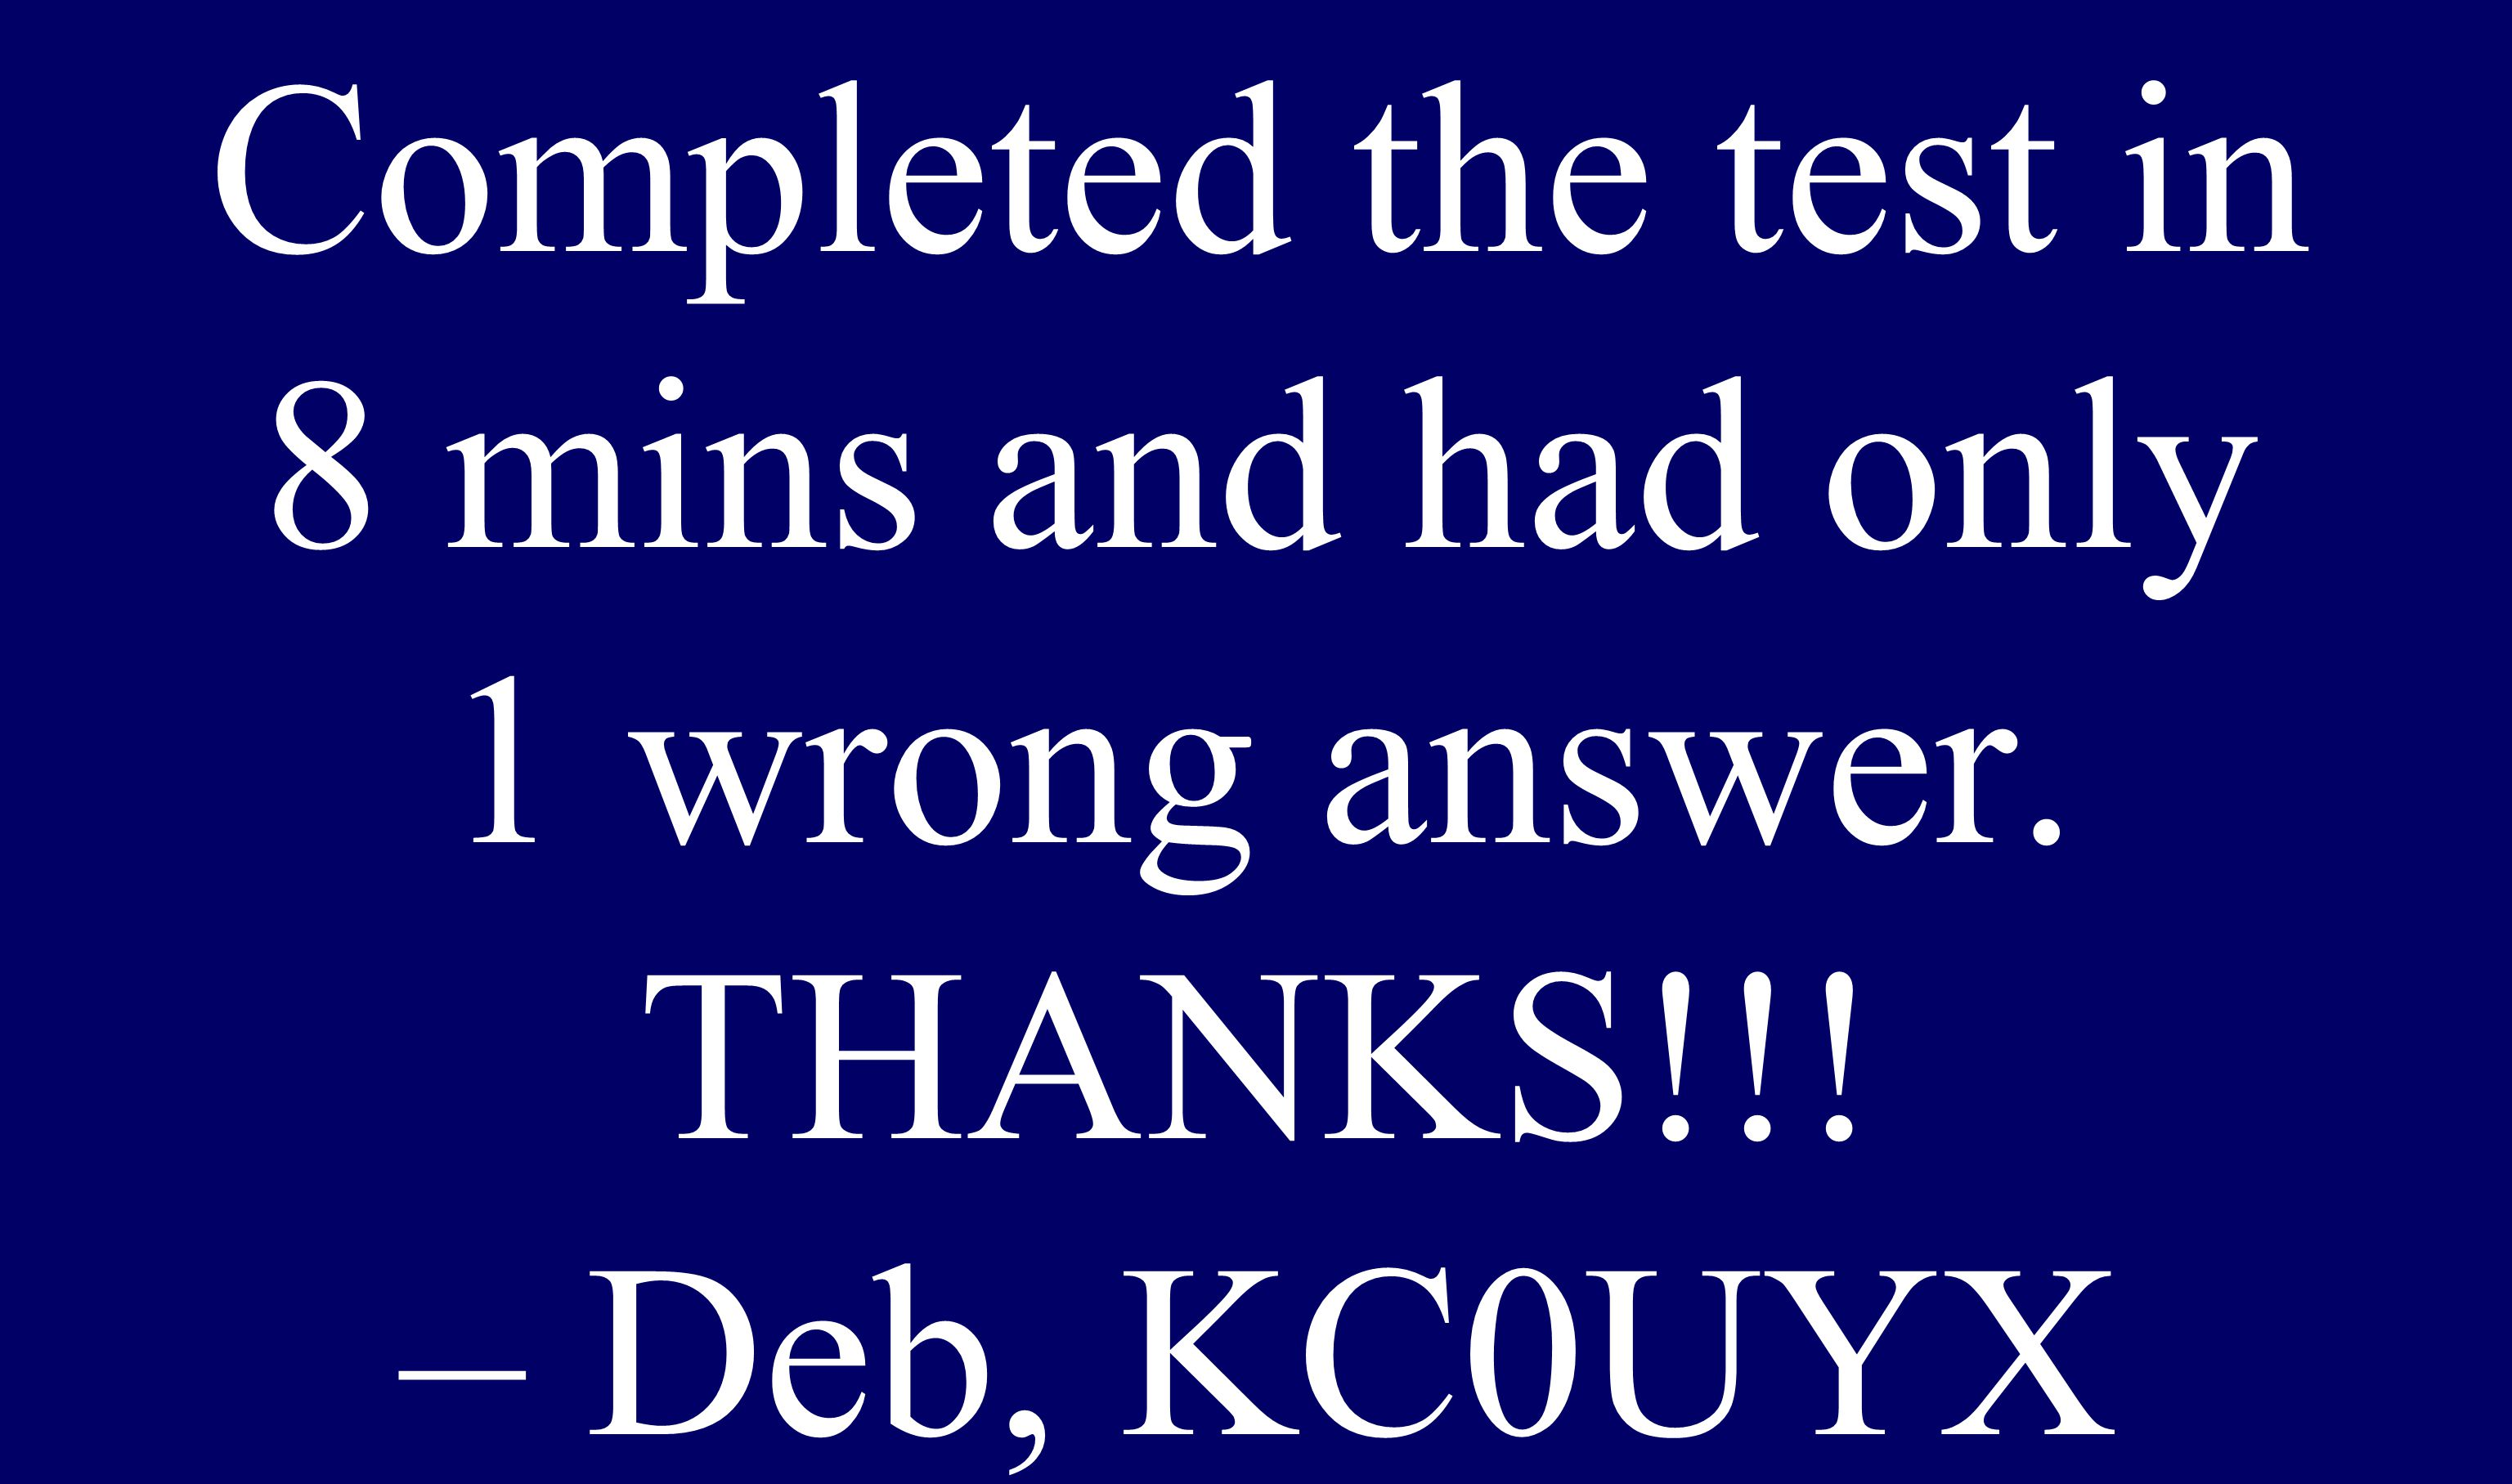 Completed the test in 8 mins and had only 1 wrong answer. THANKS!!! – Deb, KC0UYX